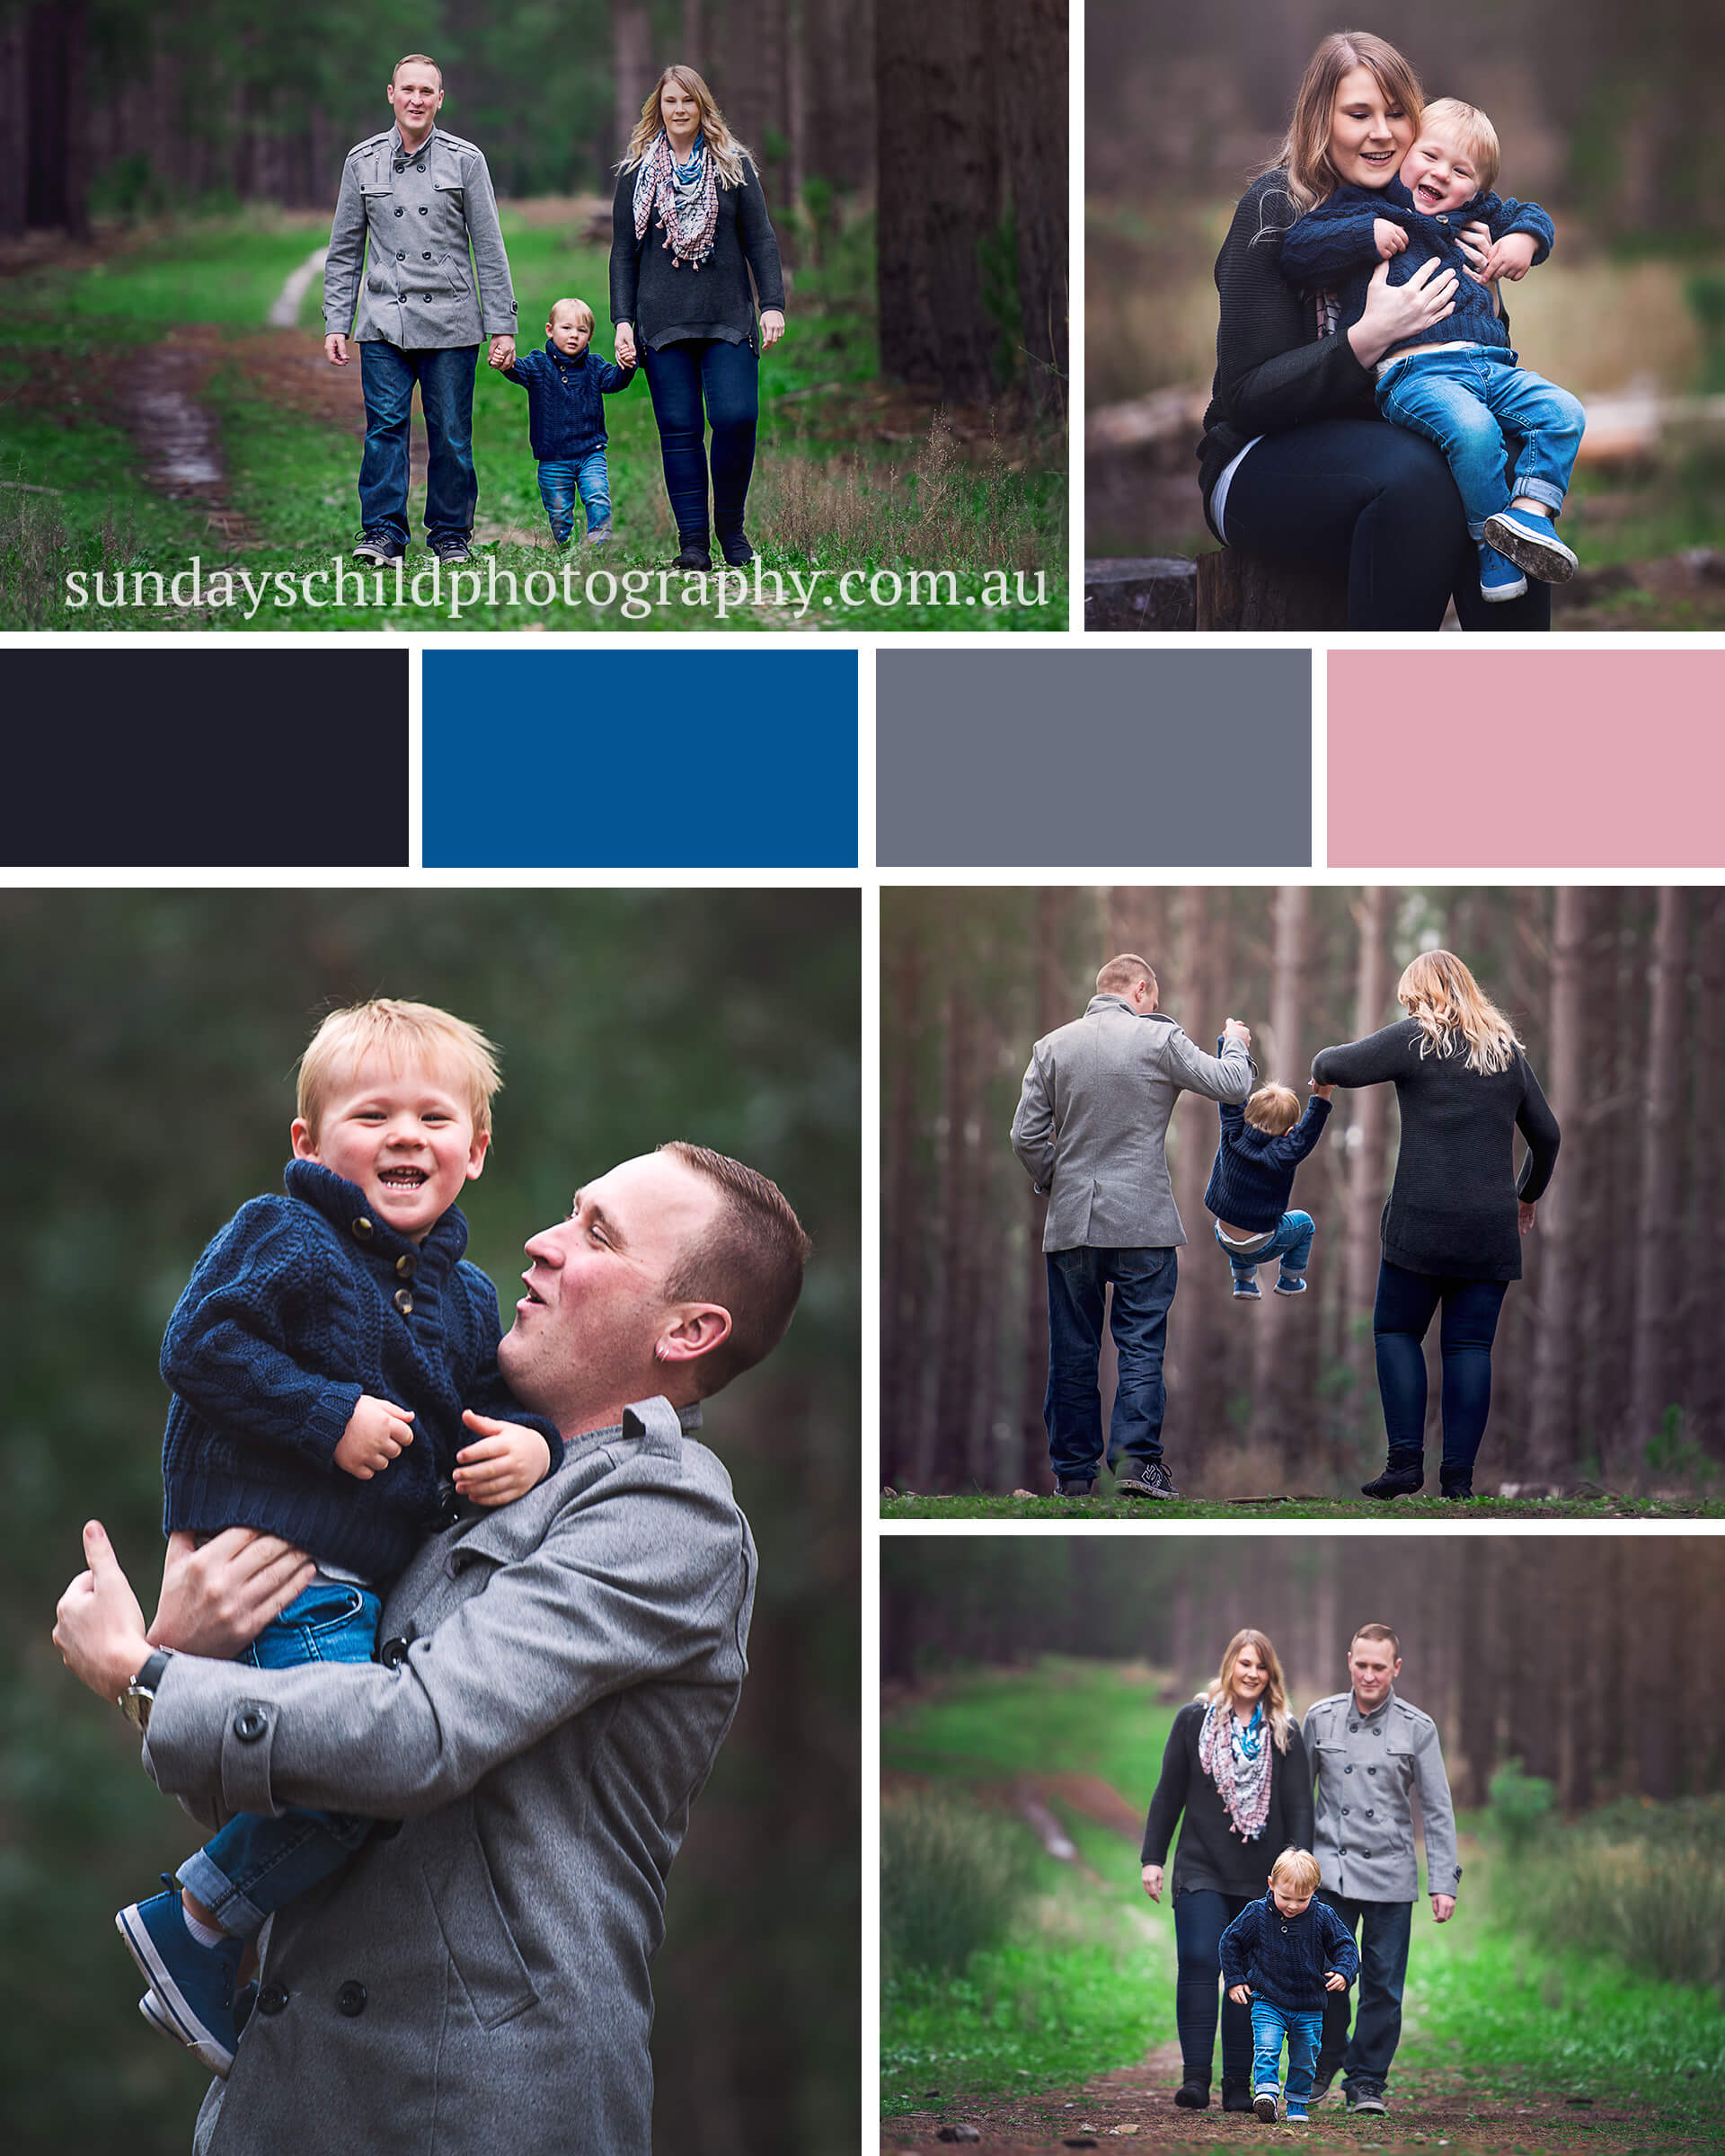 Adelaide Family Photography Session adding pops of colour